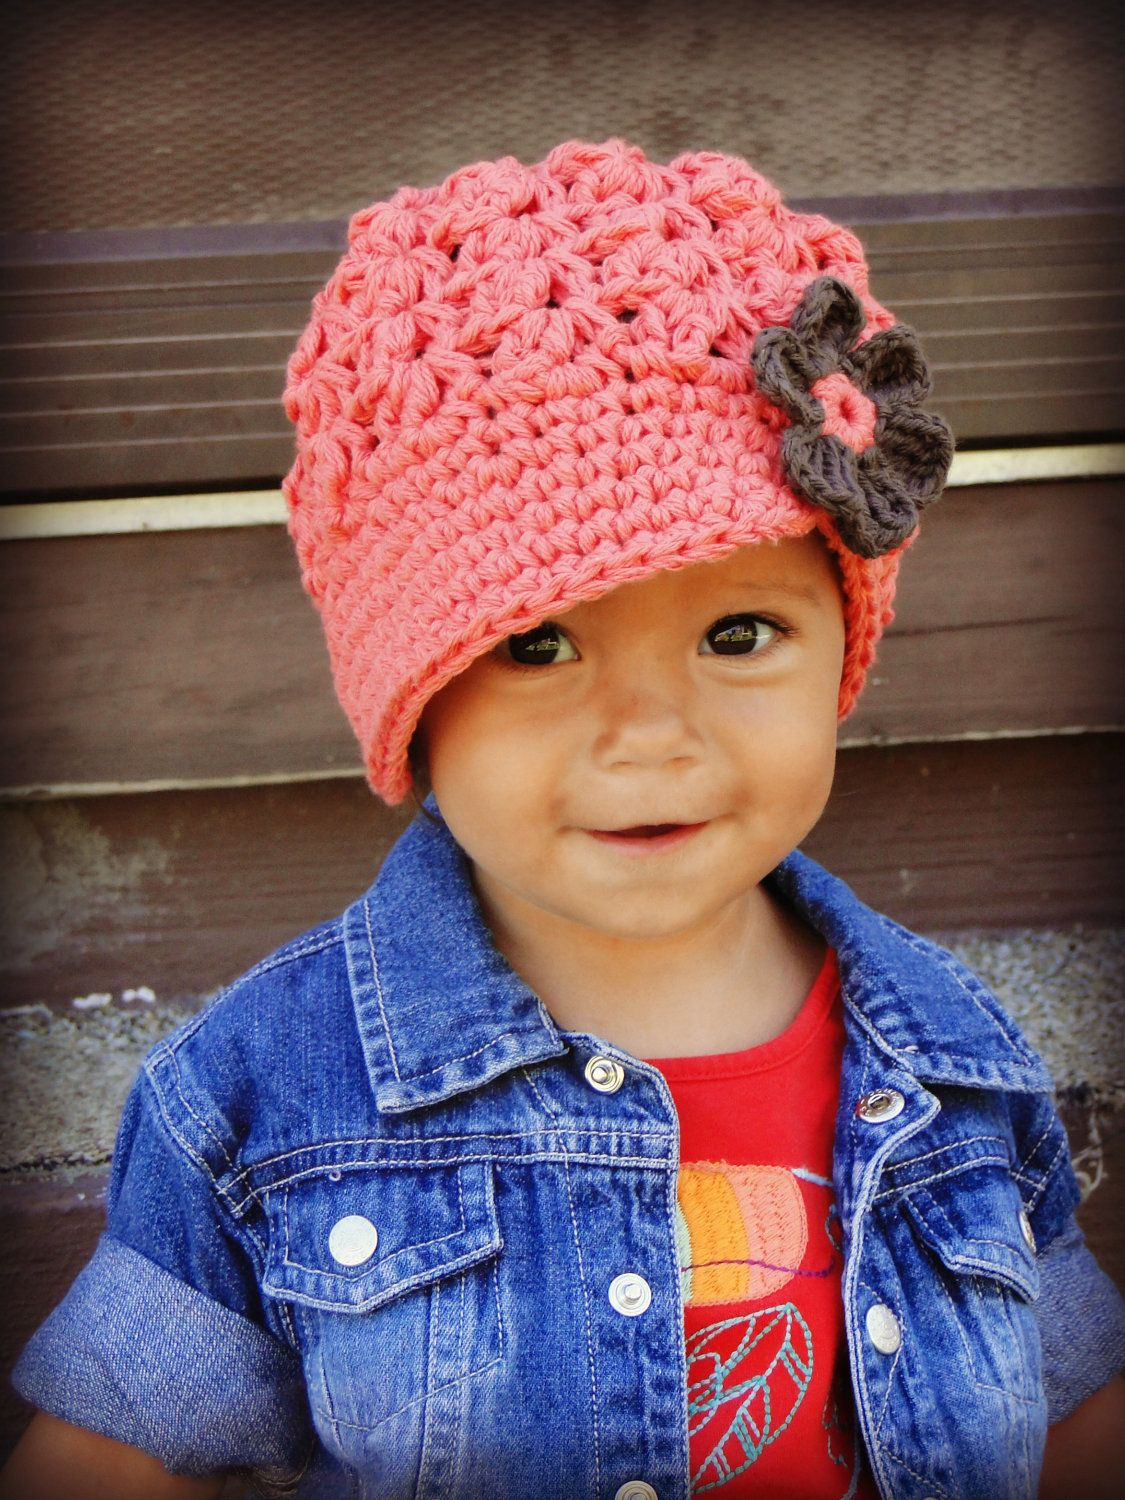 8 Adorable Handmade Knit Hats For Tots | Crocheted baby hats, Baby ...